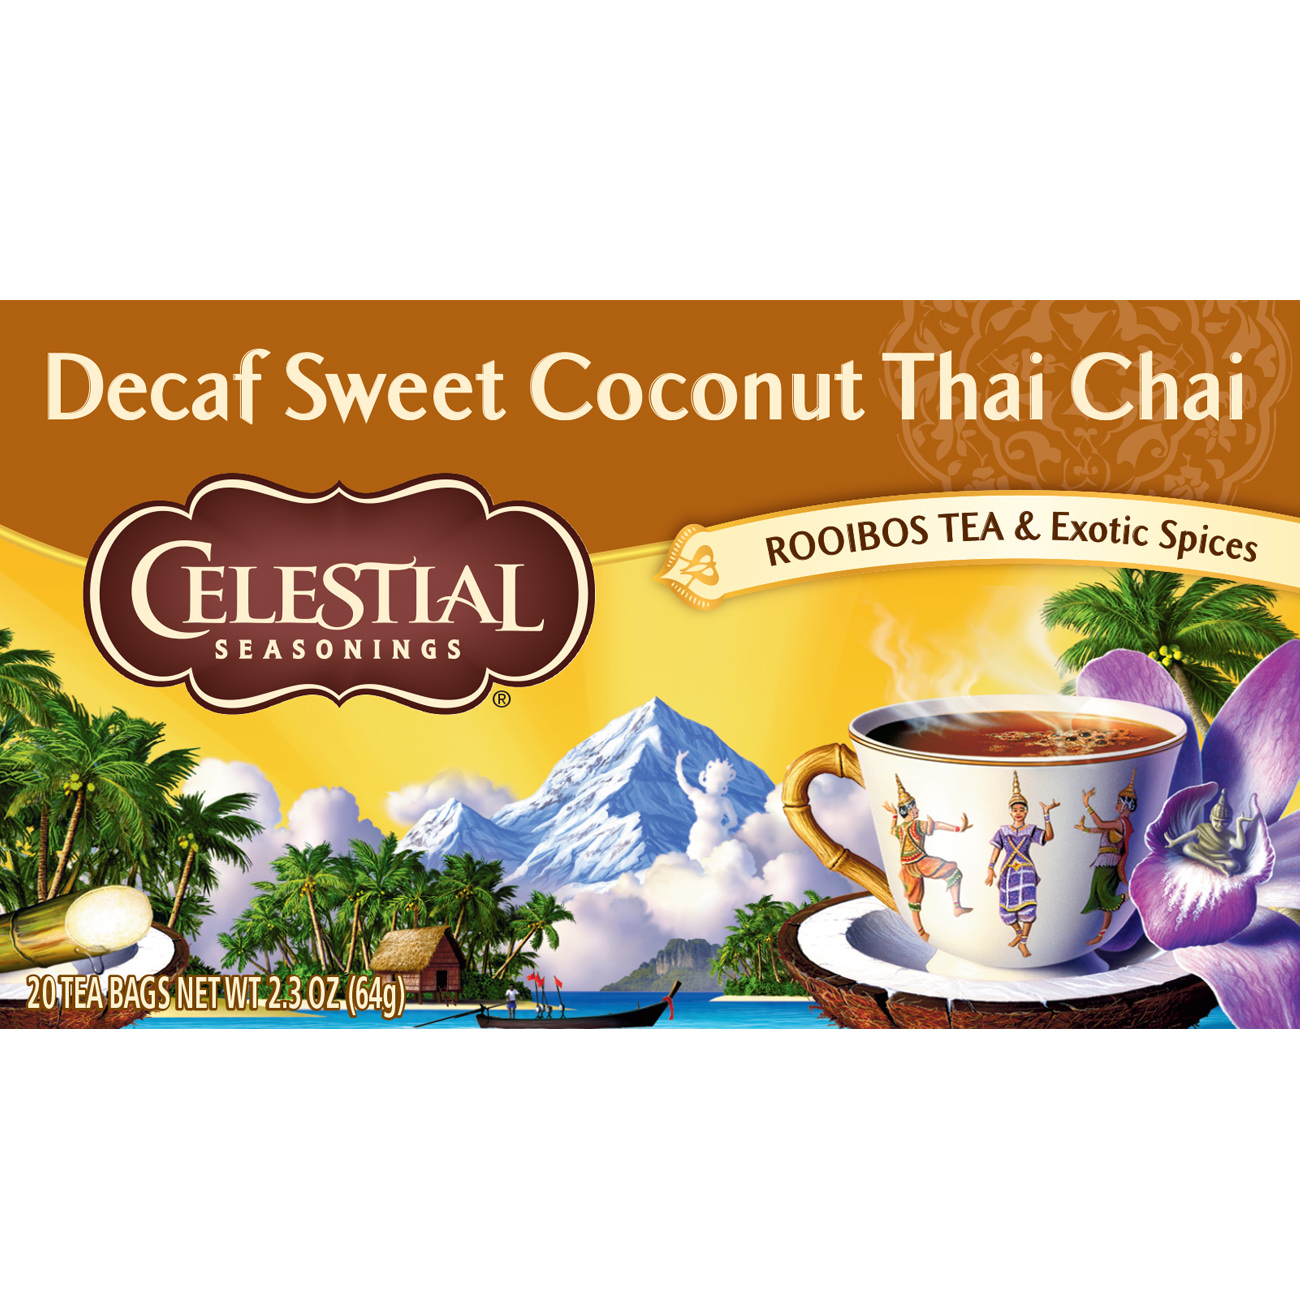 (2 Pack) Celestial Seasonings Decaf Sweet Coconut Thai Chai, 20 Count